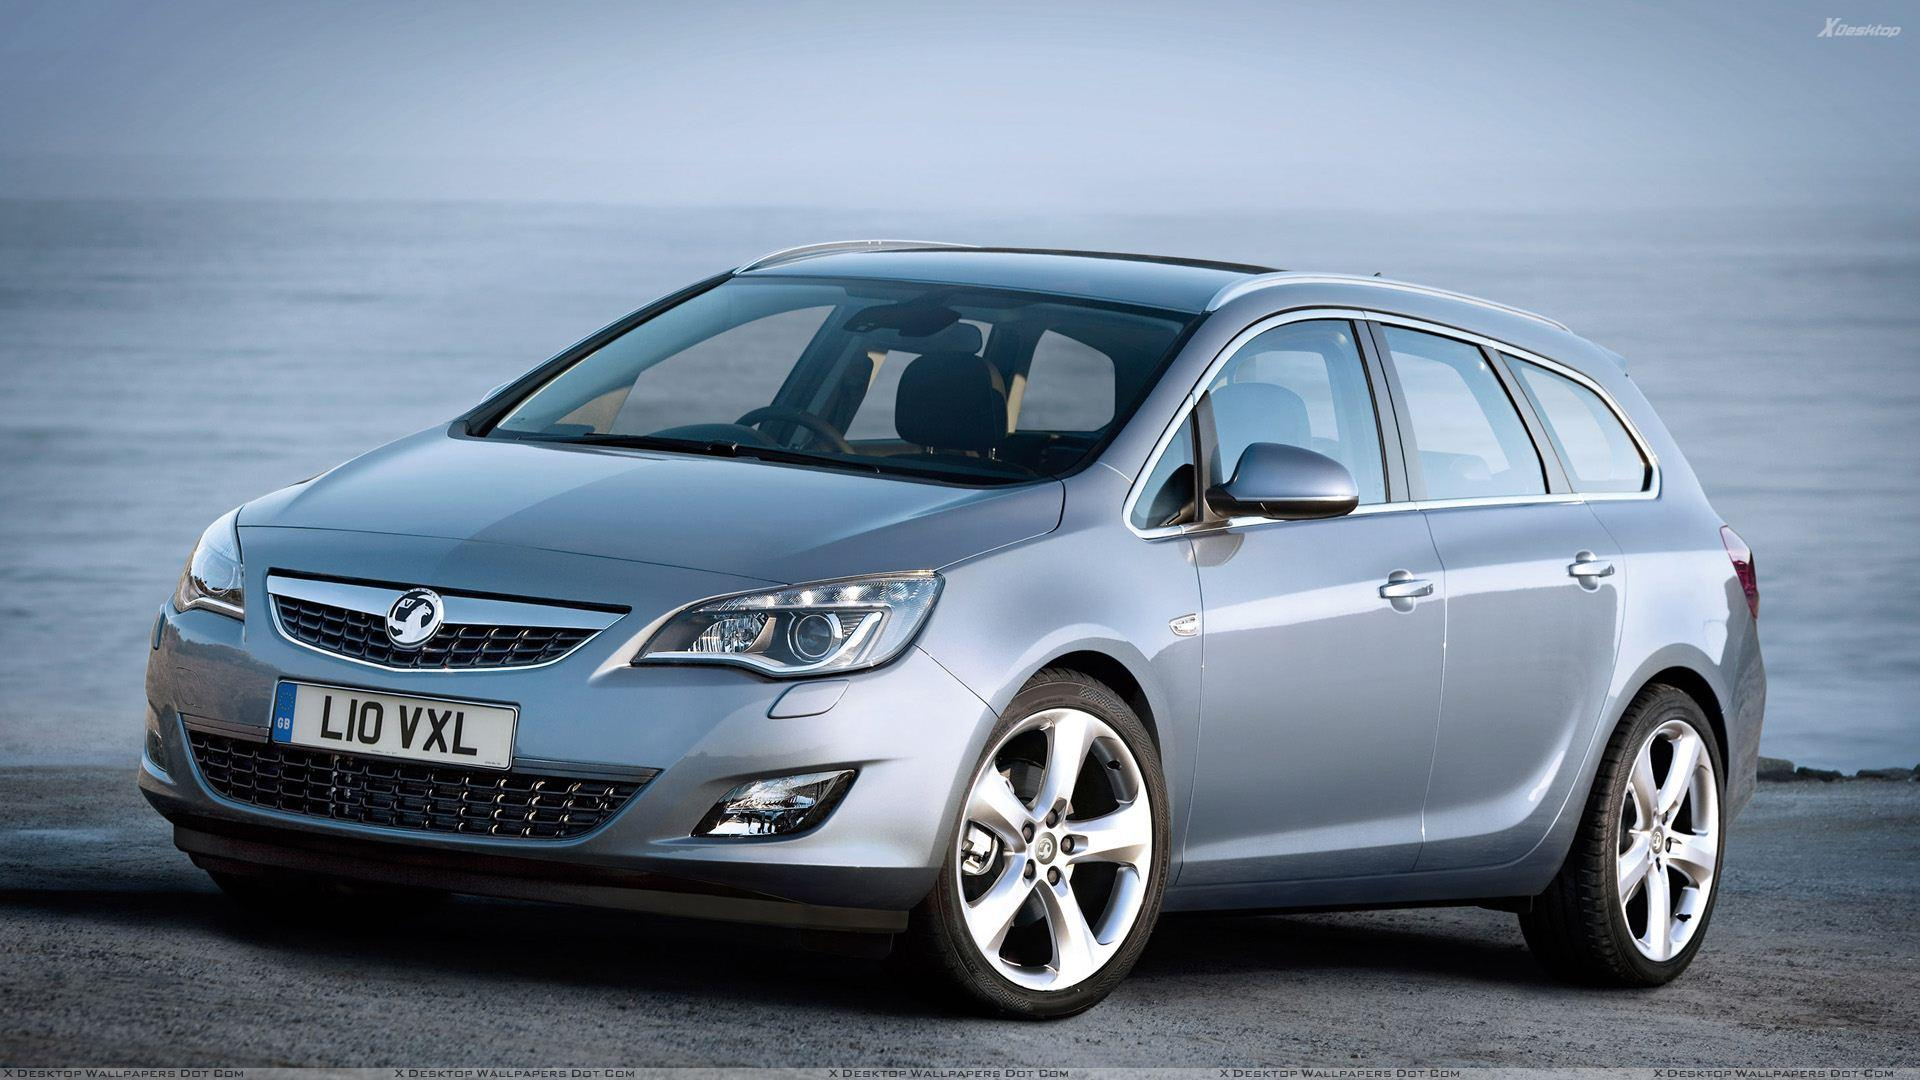 Vauxhall Astra Wallpapers, Photos & Images in HD